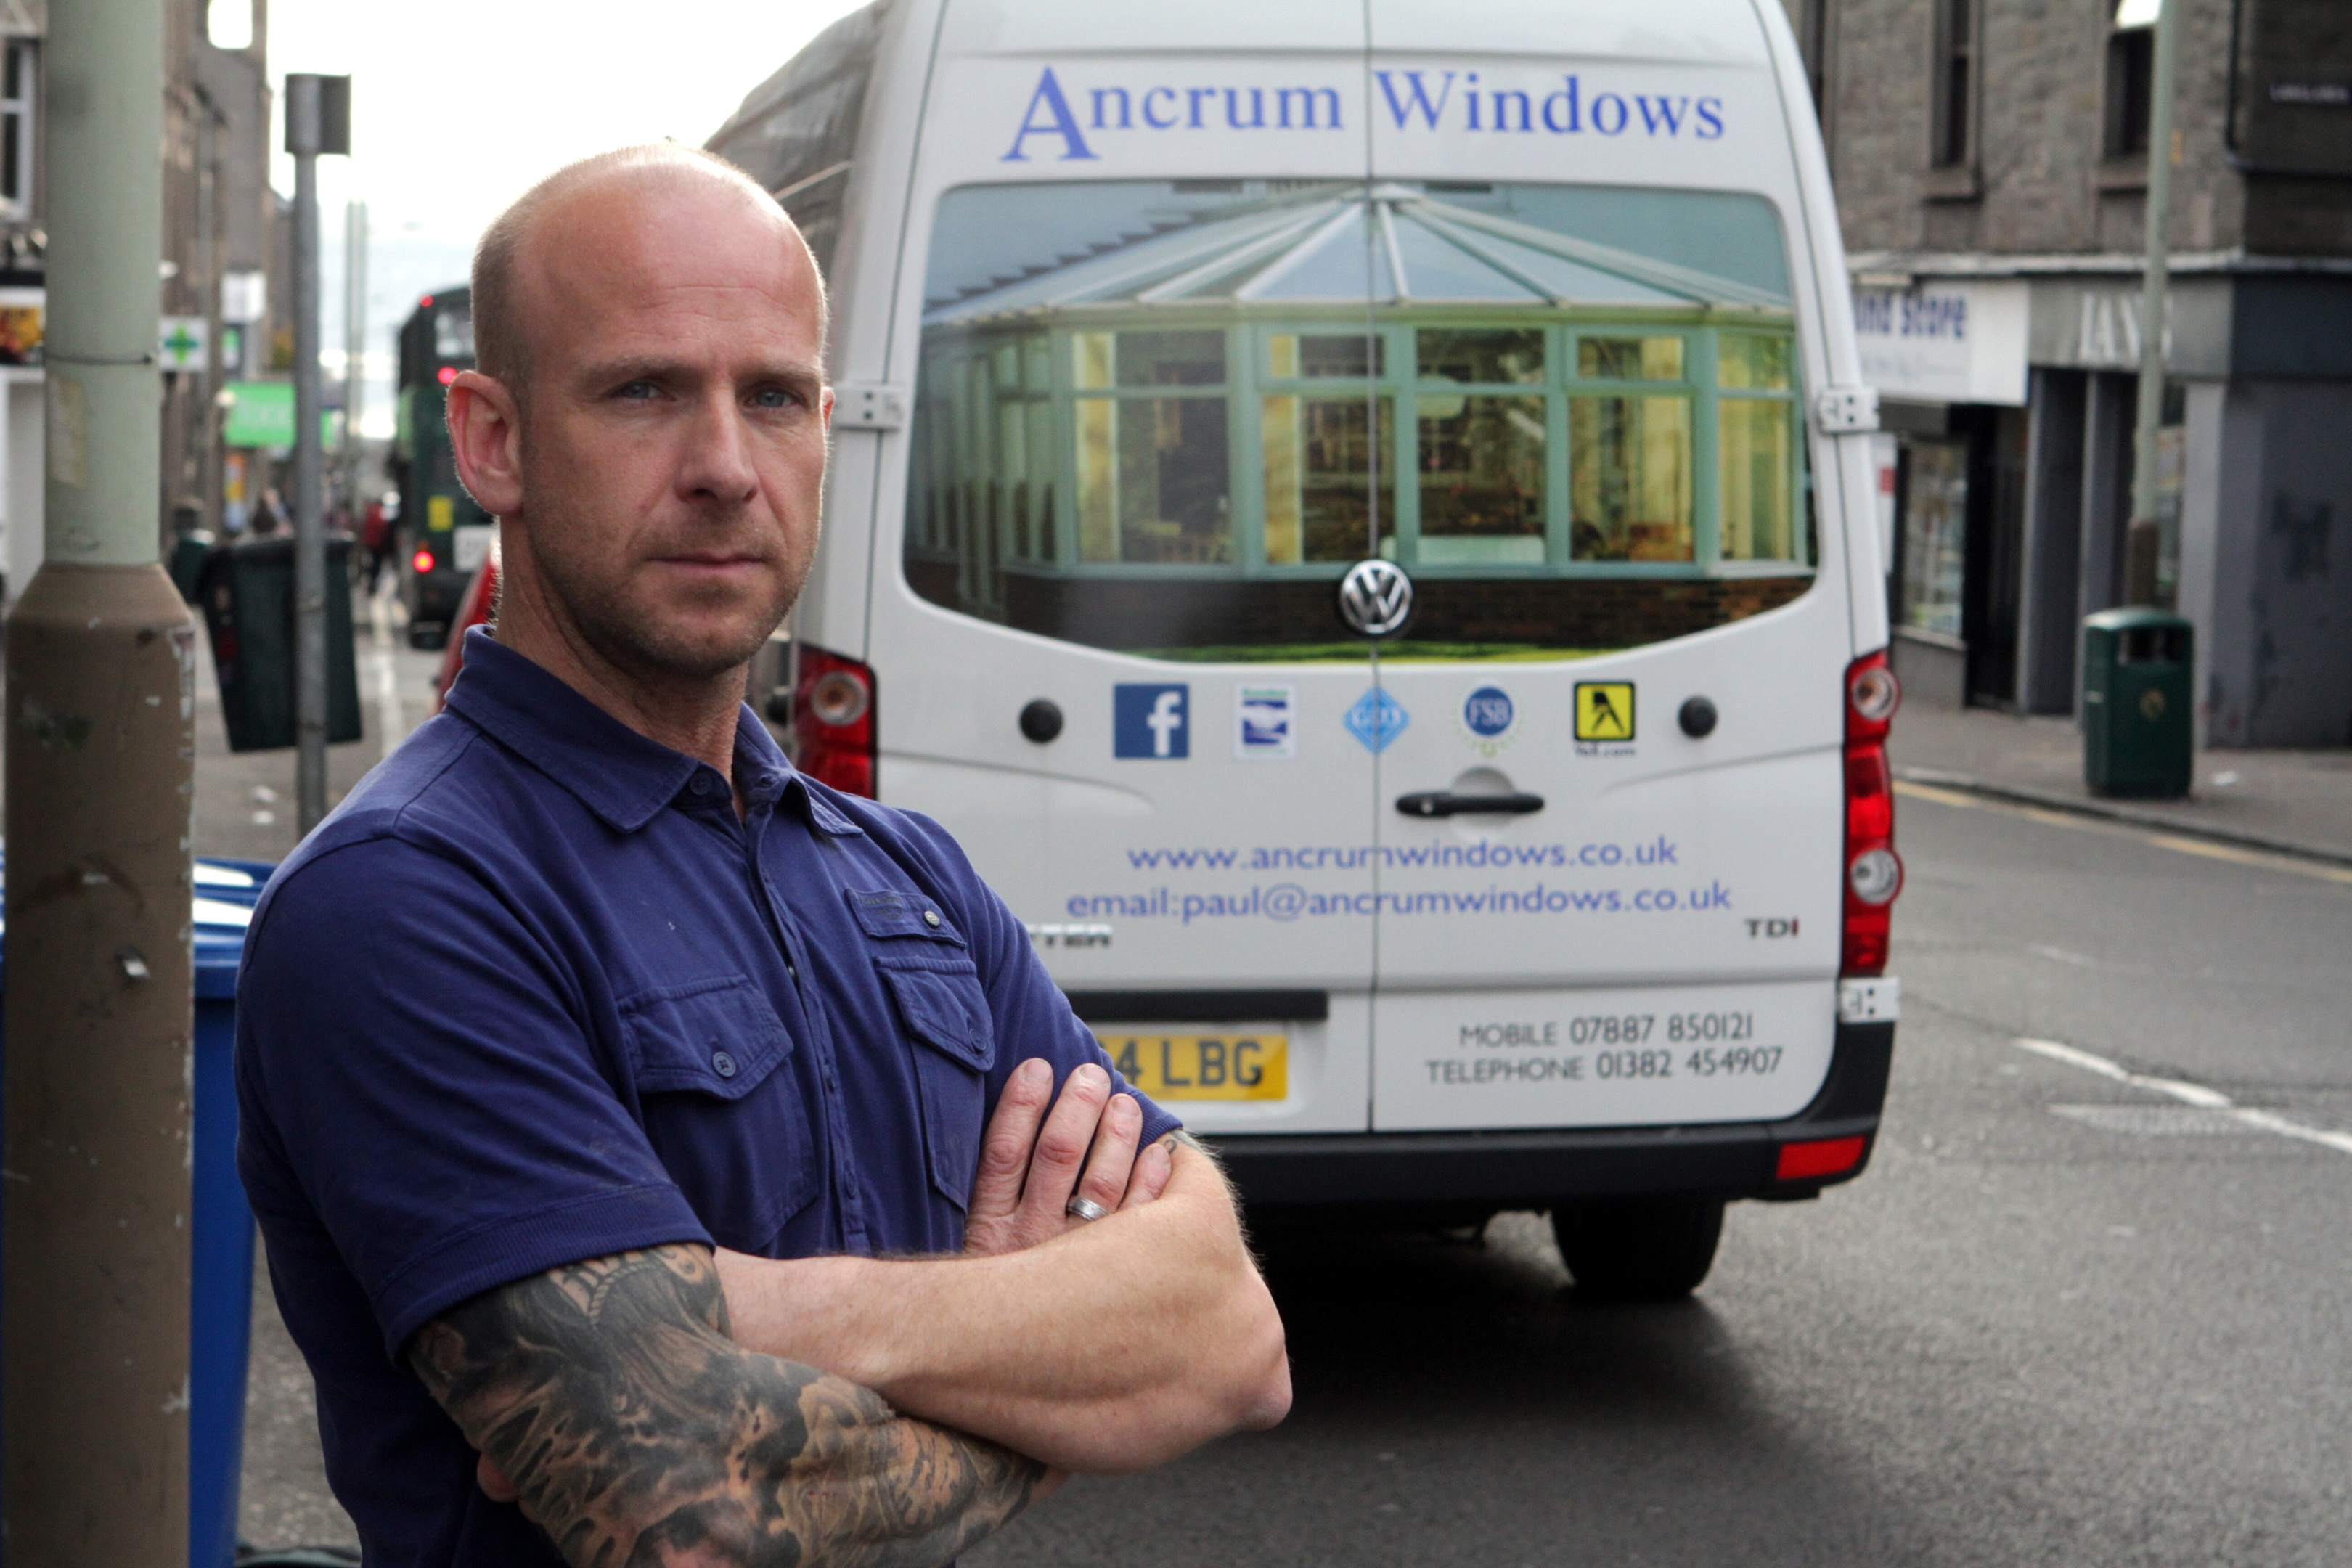 Paul Anderson, who had tools stolen from his van.